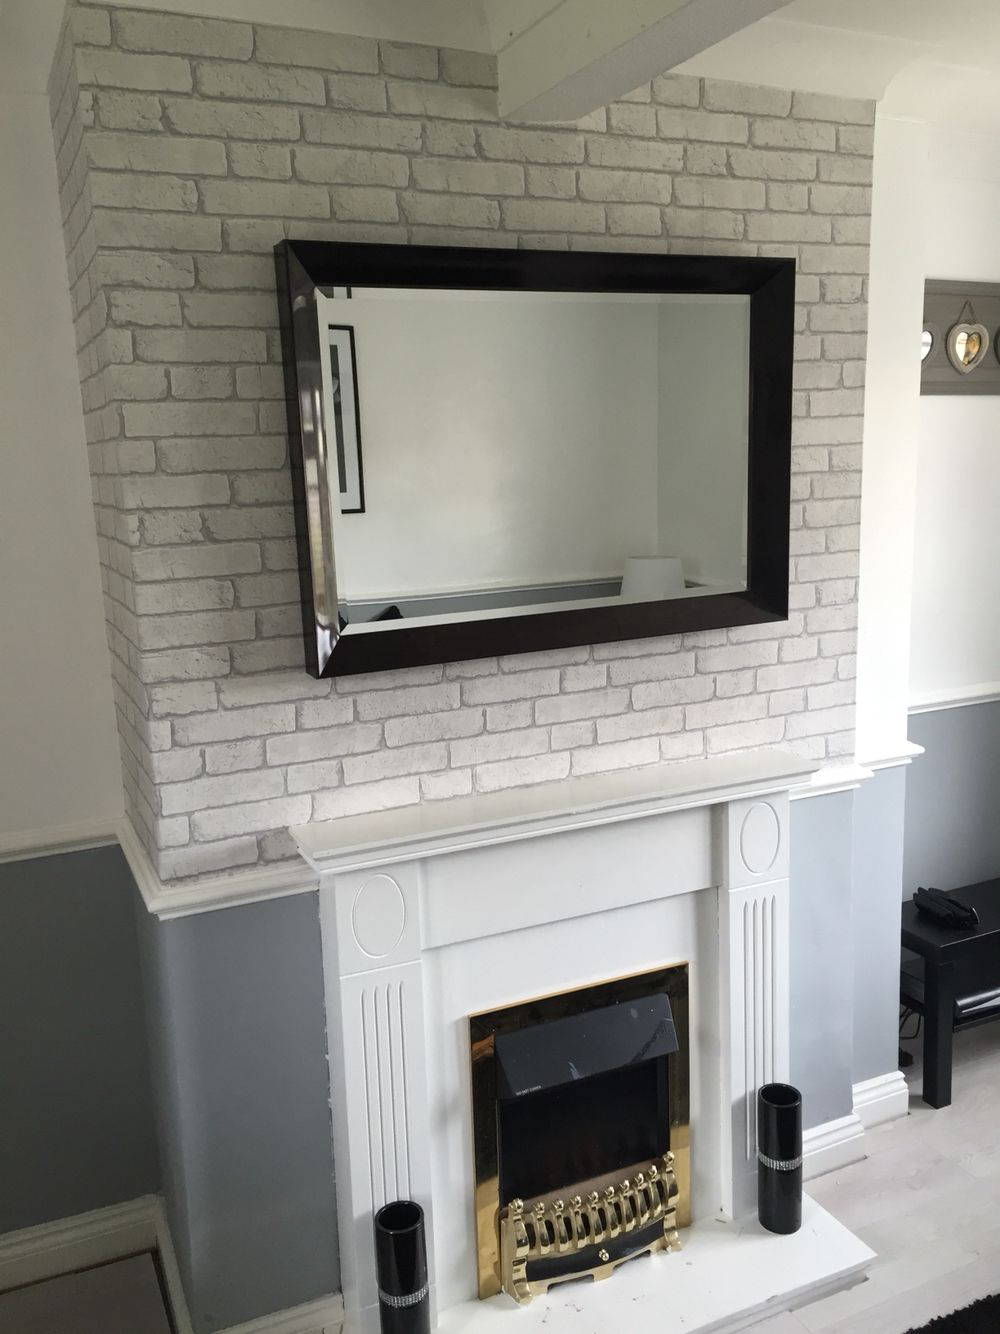 Brick wall wallpaper for chimney breast